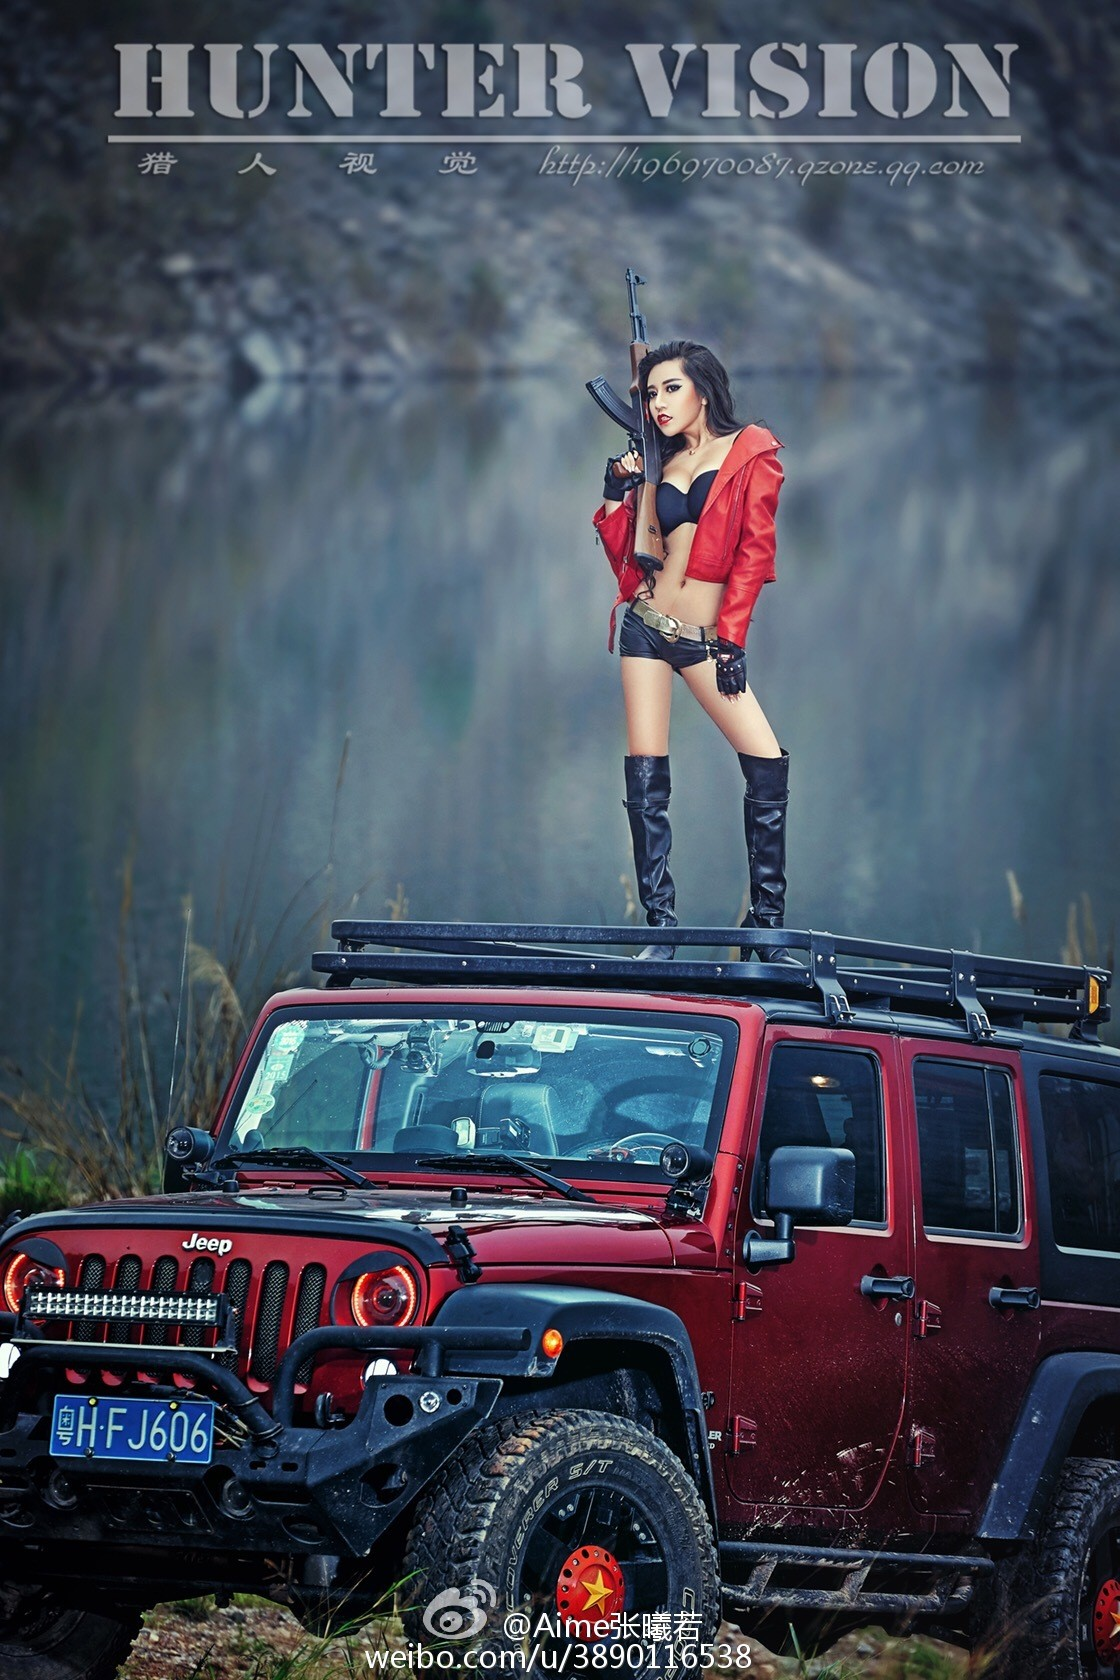 Jeep Cherokee 2014 >> Jeep Wrangler with Chinese Communist Star and Sexy Model Is Weird - autoevolution